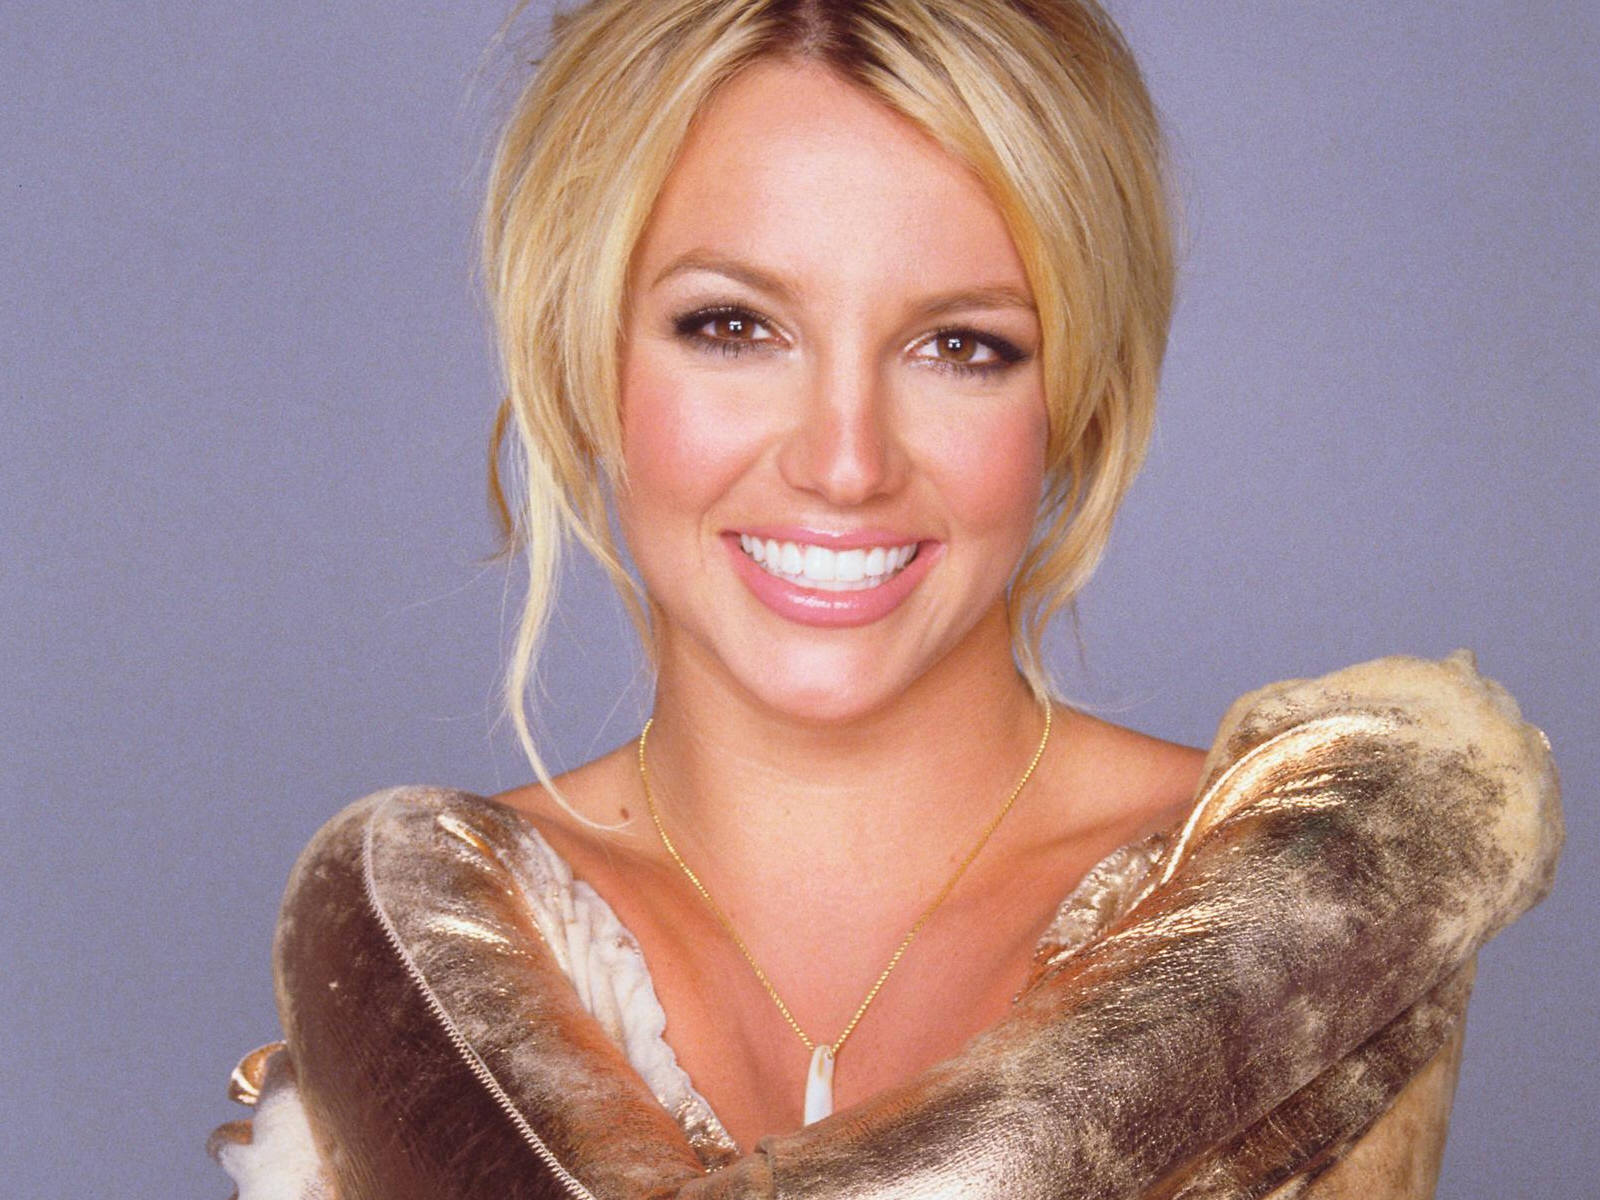 The Best Bloggers Profile Picture and Video: Britney Spears Britney